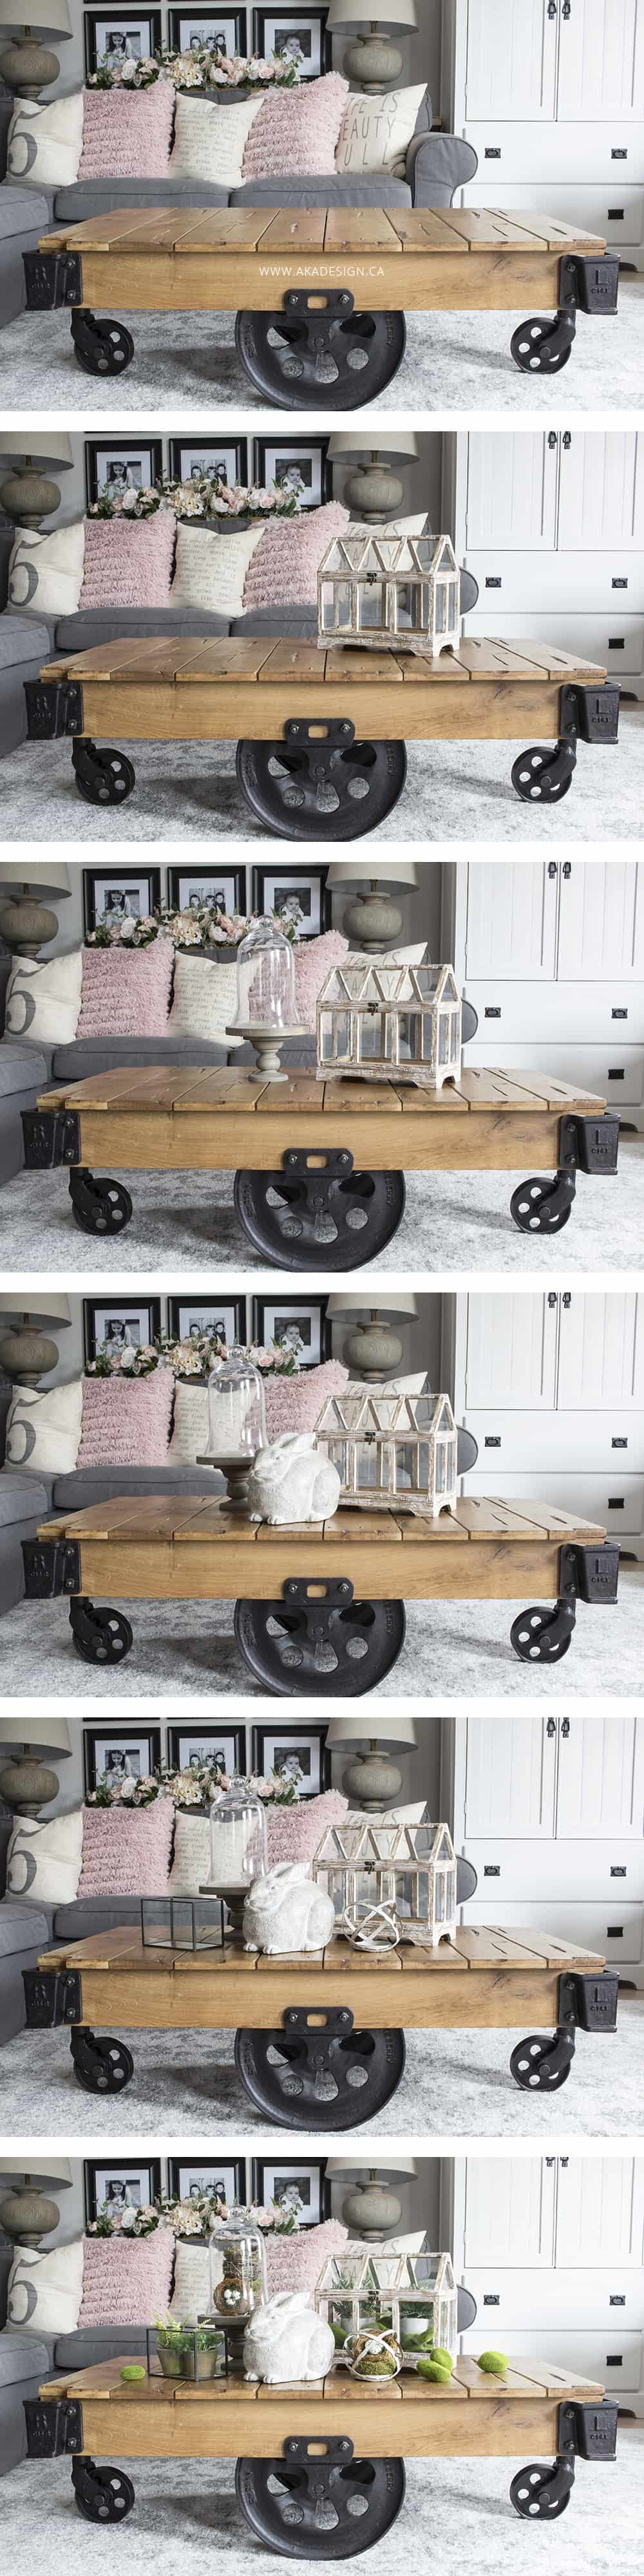 step by step coffee table vignette